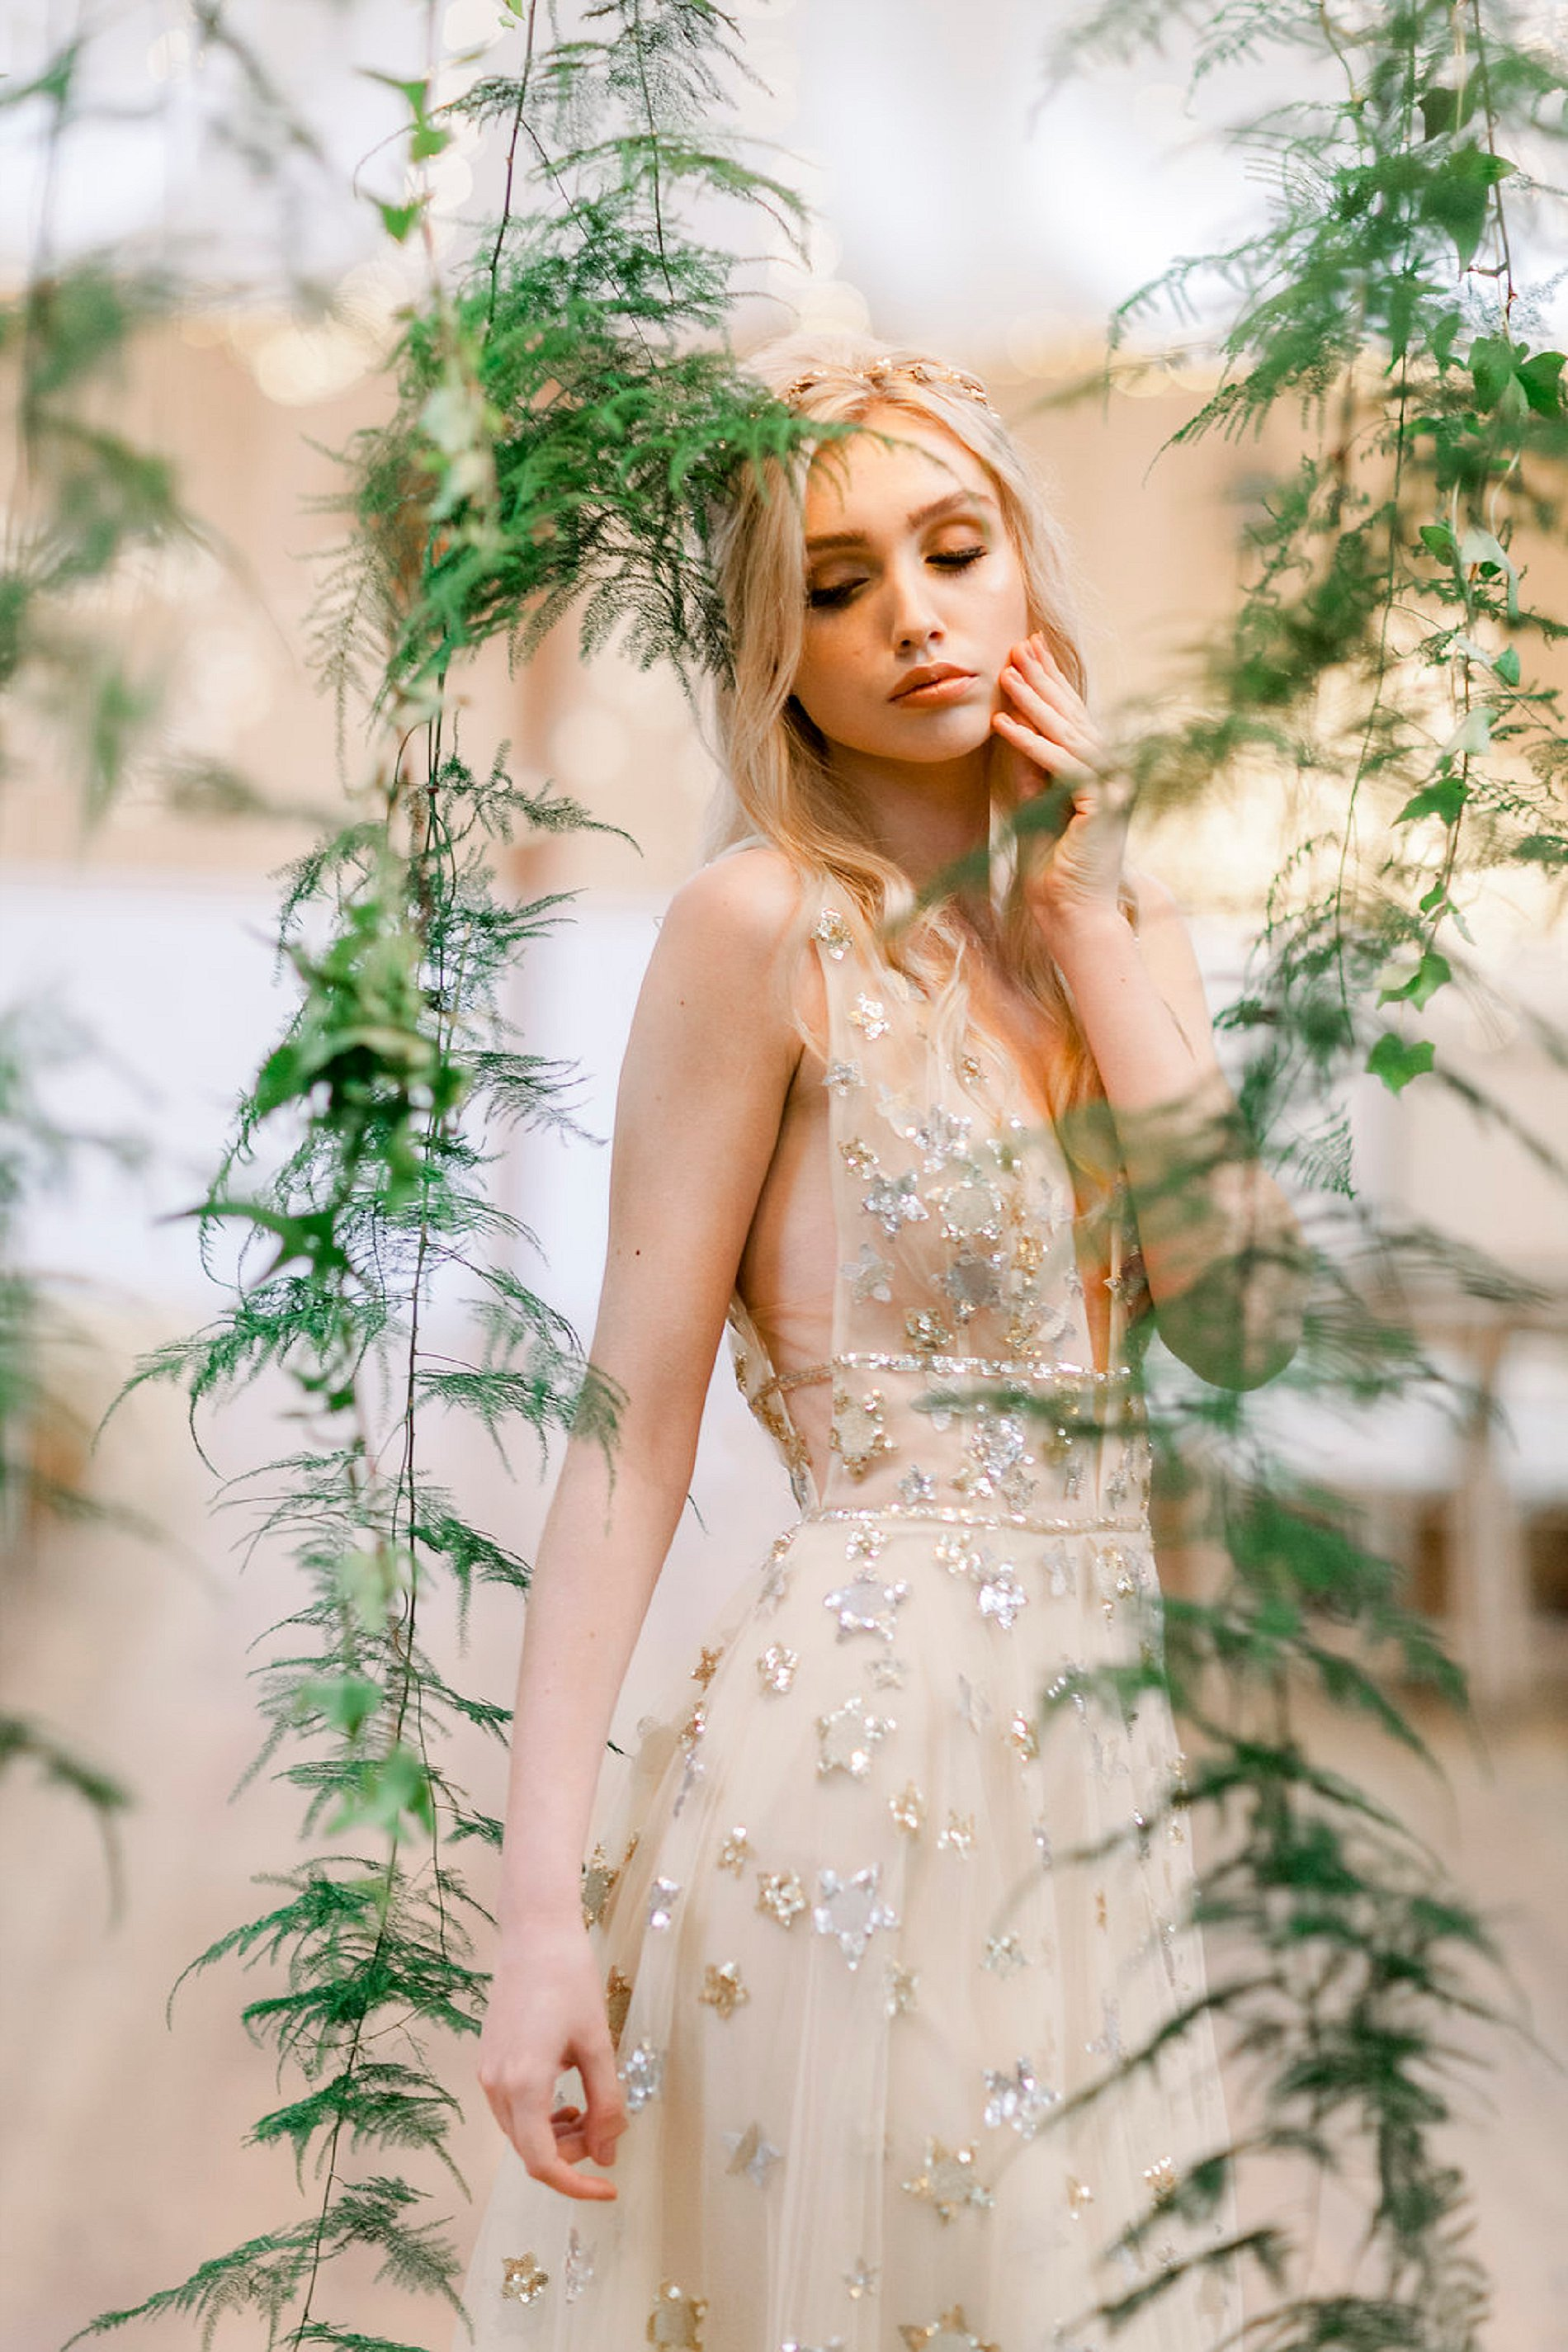 Super Natural Creative Bridal Editorial (c) Jo Bradbury (18)